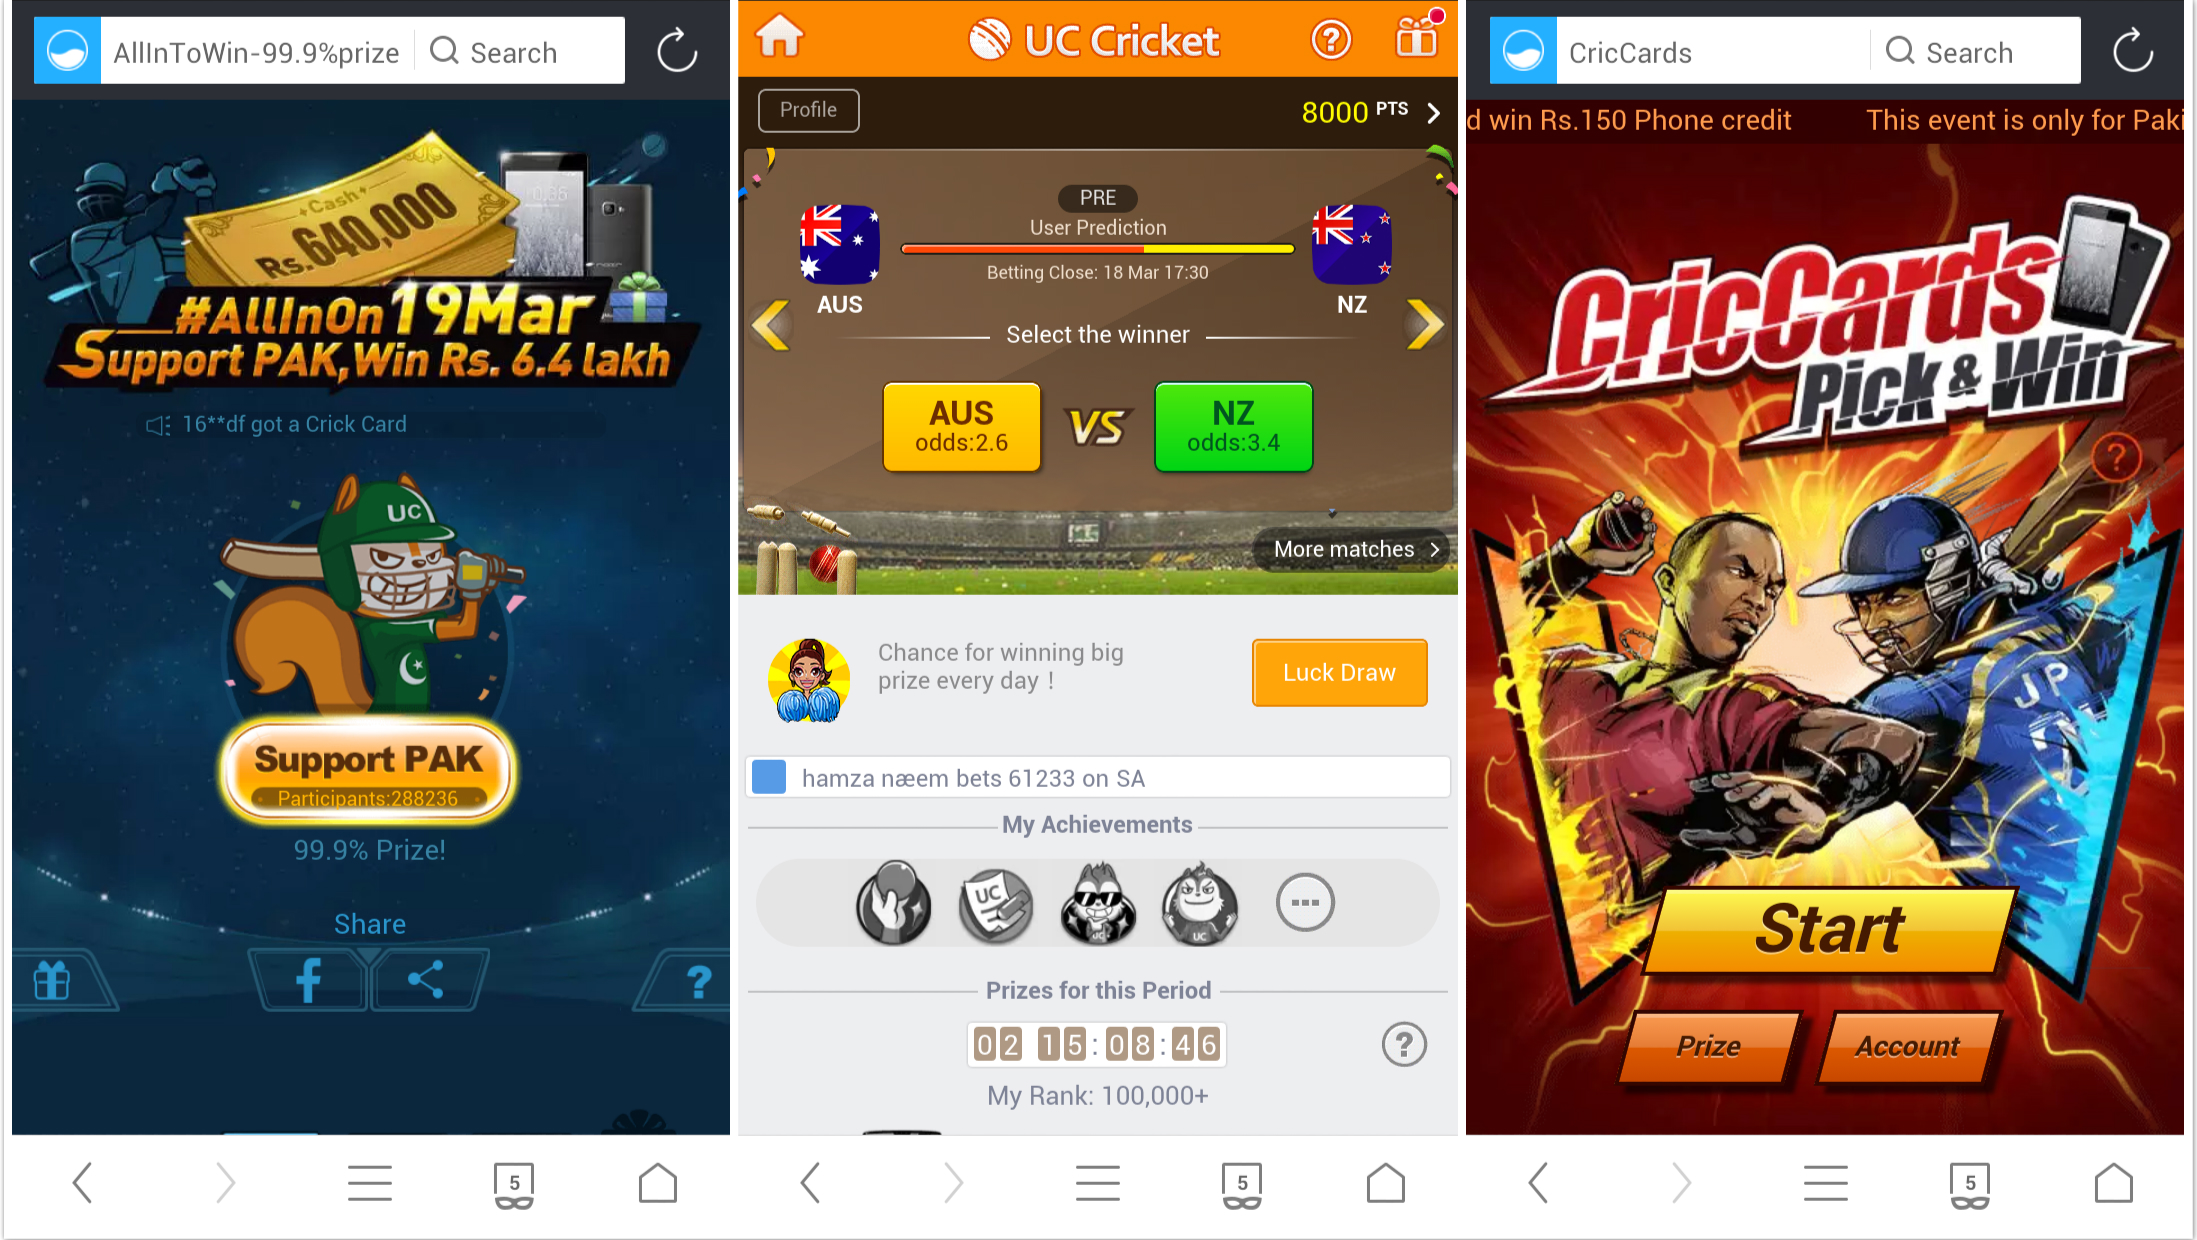 UC Browser launches 1st series of Cricket Themed Web Games for